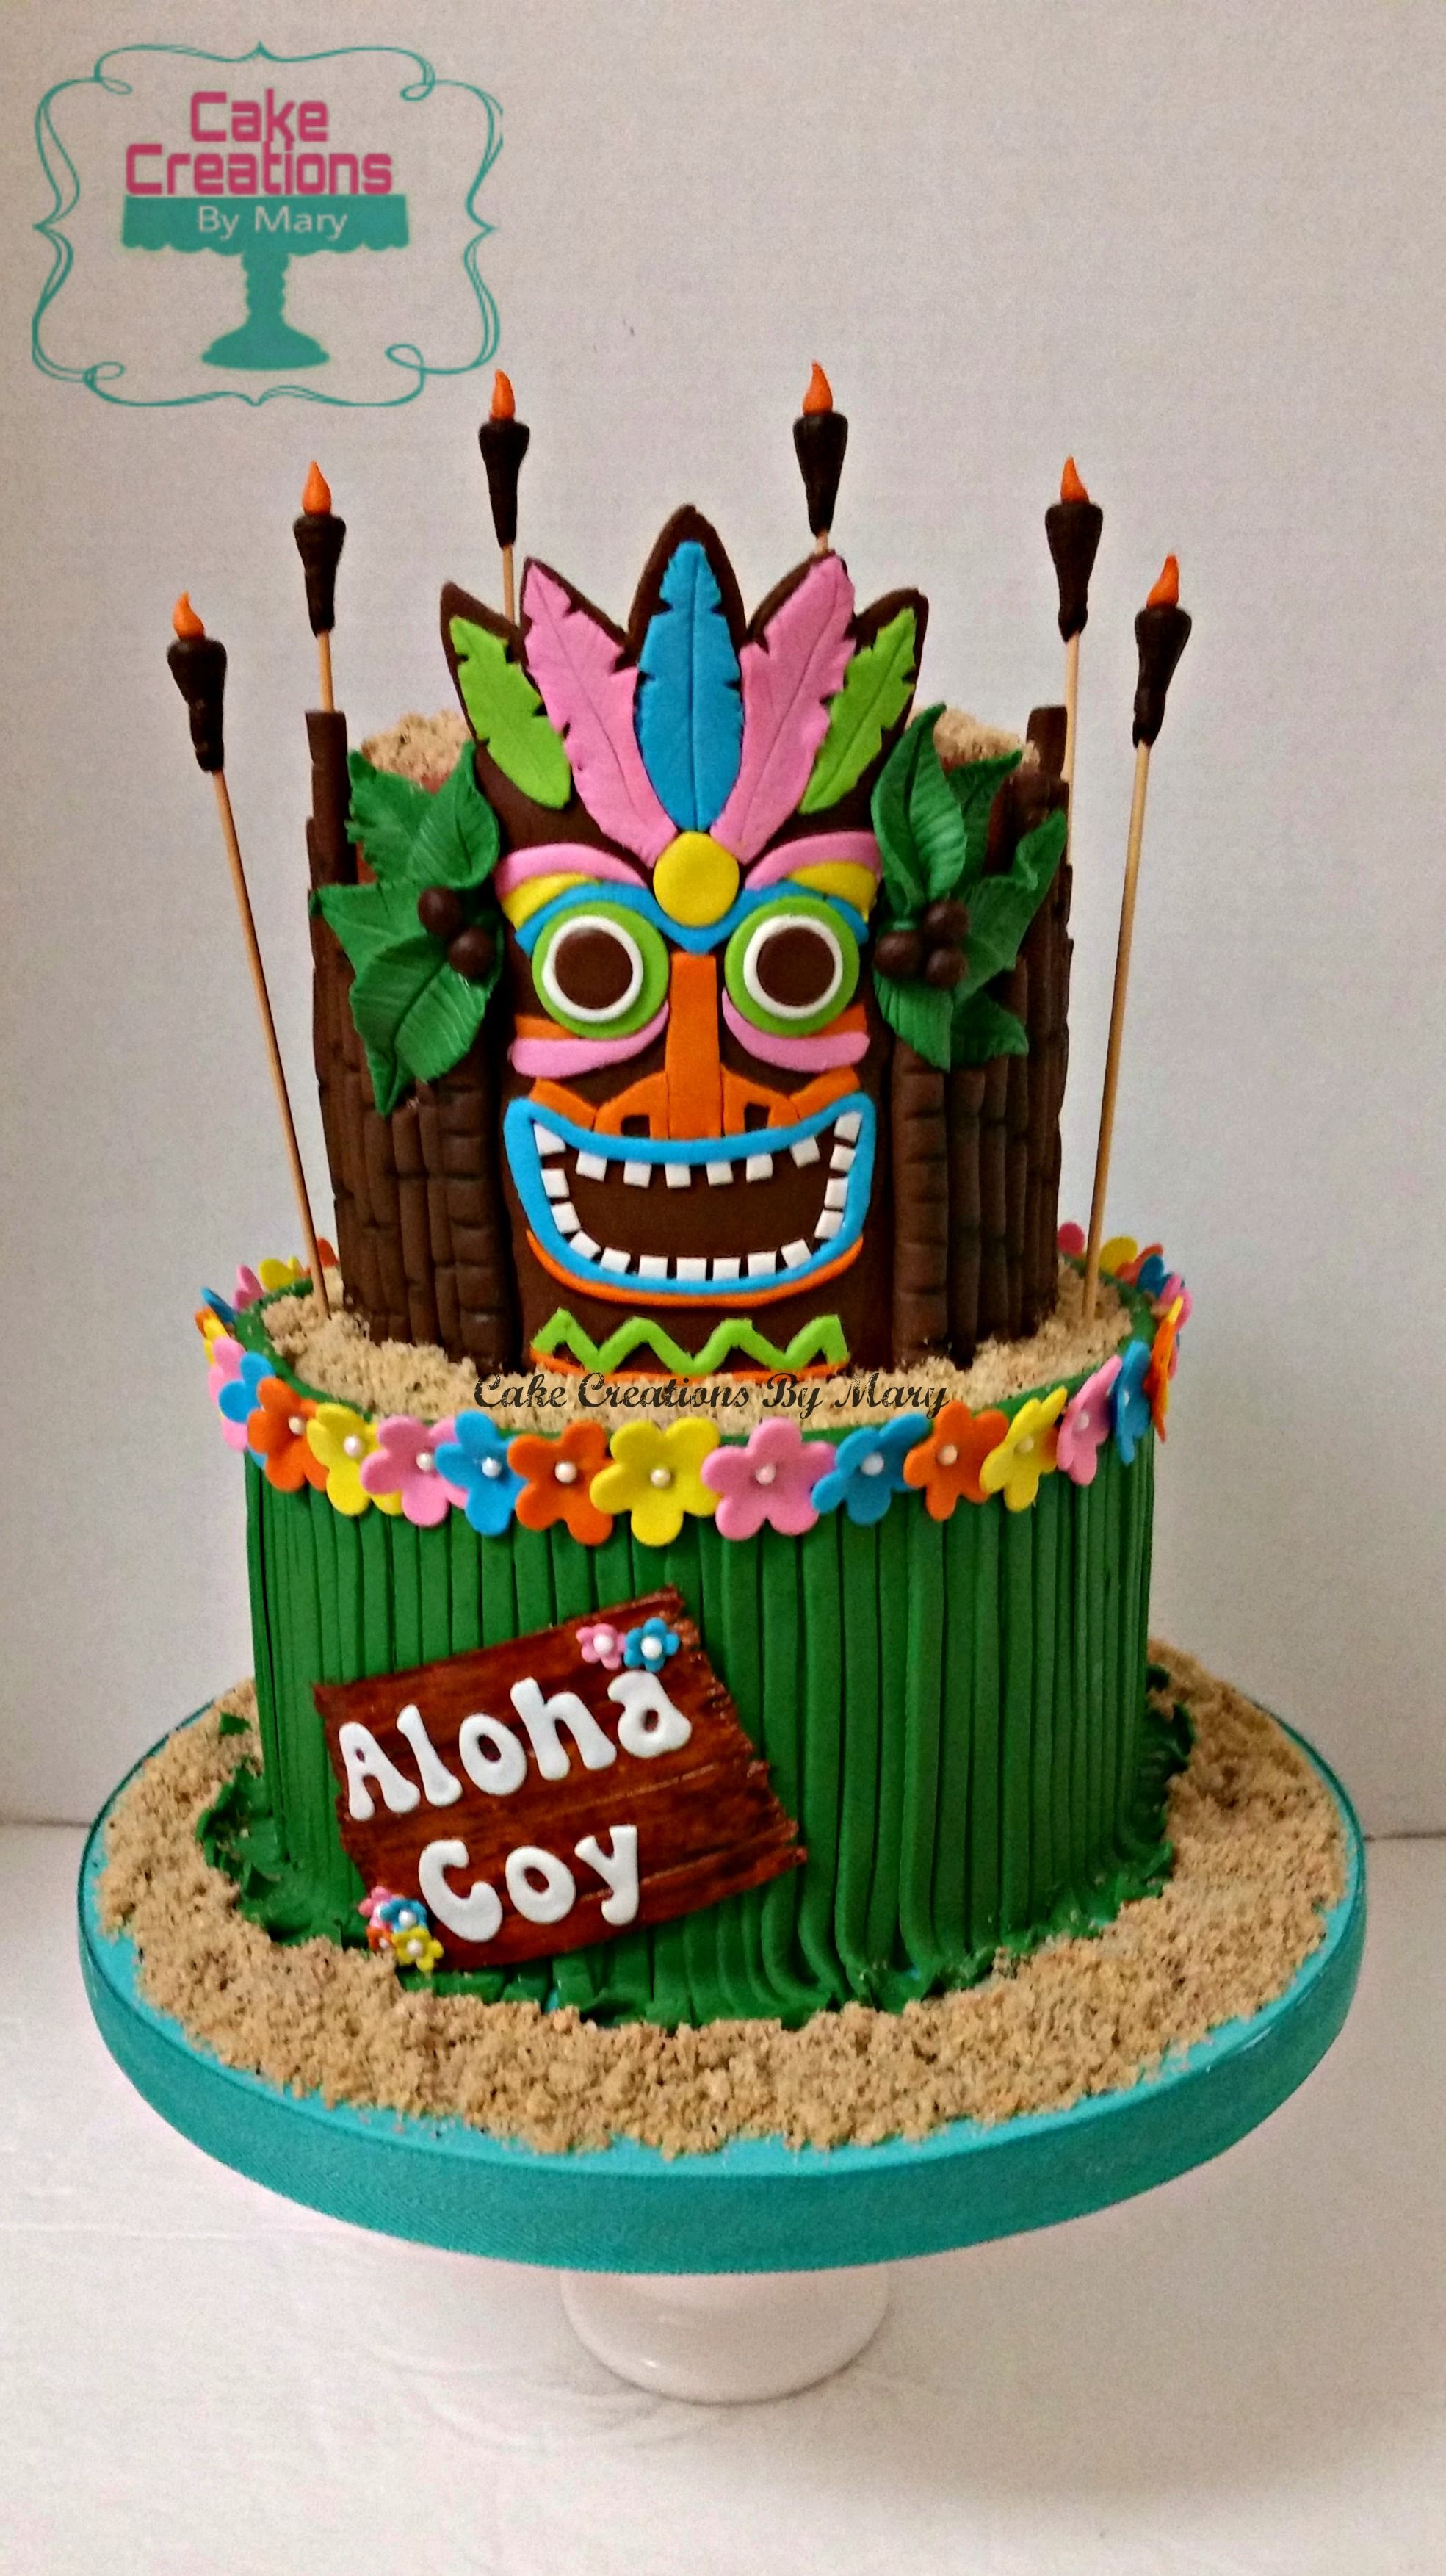 1969 X 3507 In 27 Excellent Image Of Luau Birthday Cakes